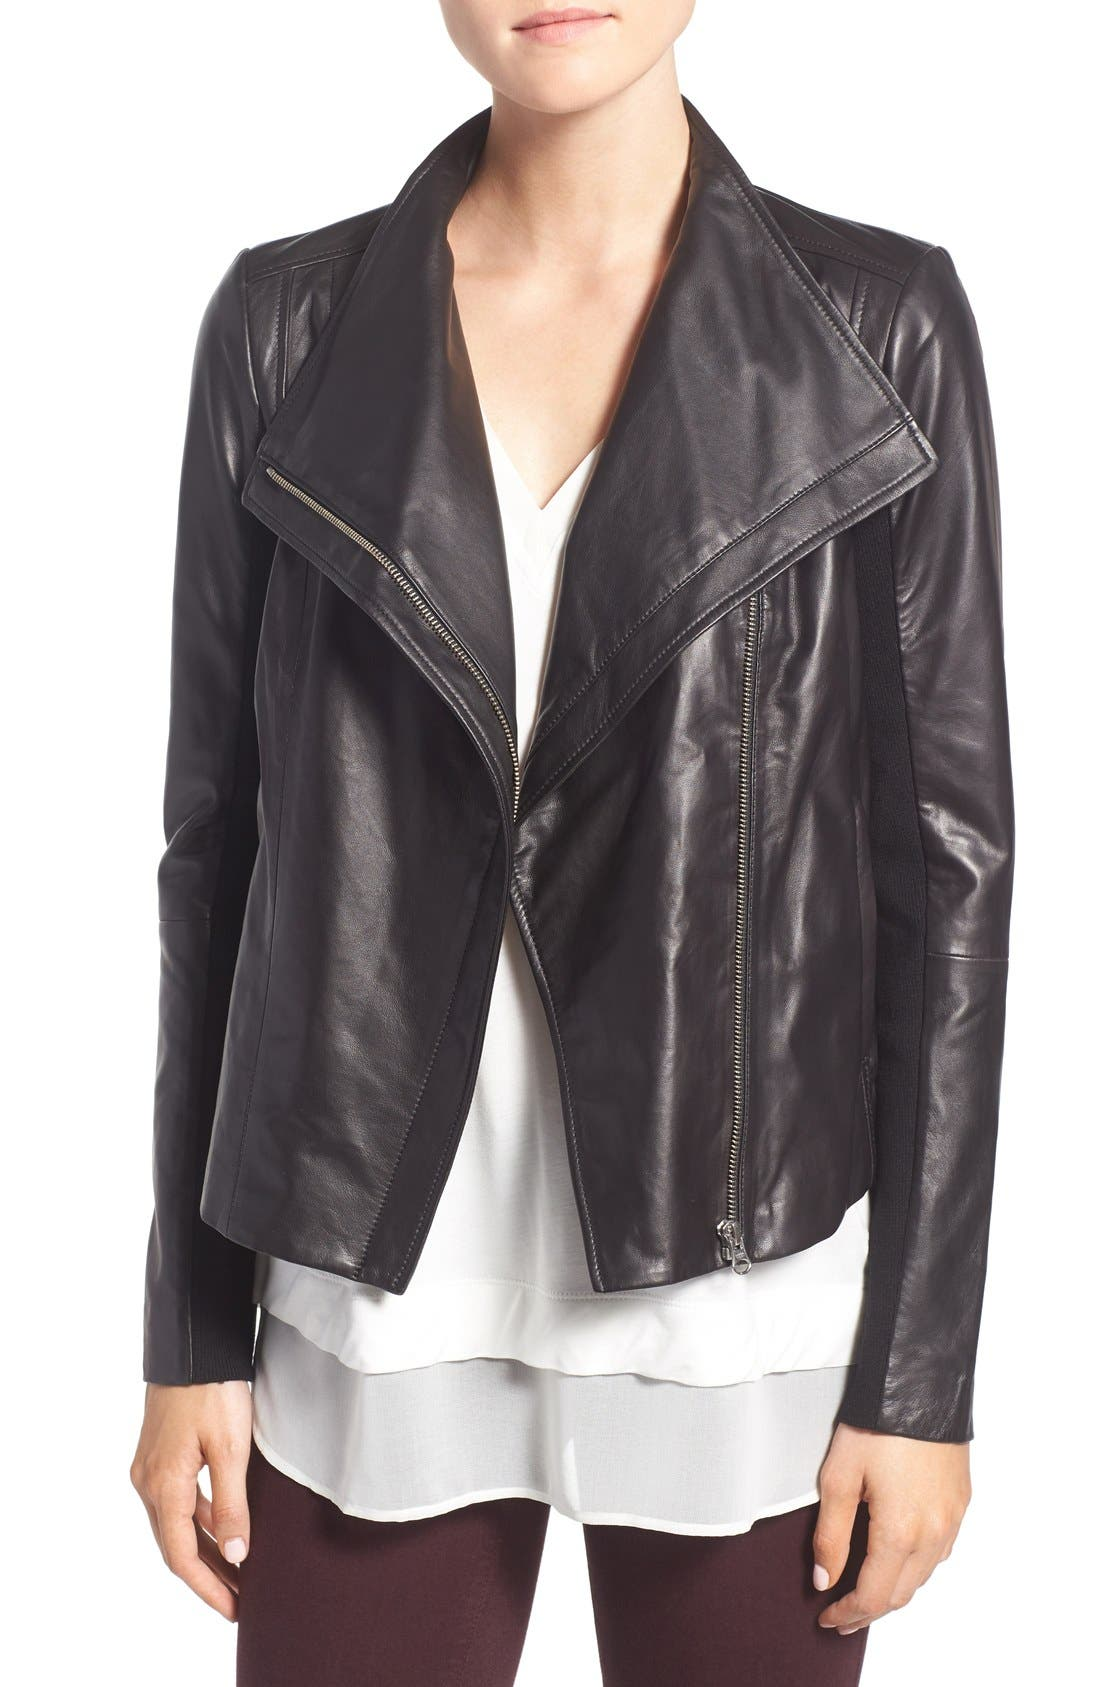 Leather jacket cost - Leather Jacket Cost 23